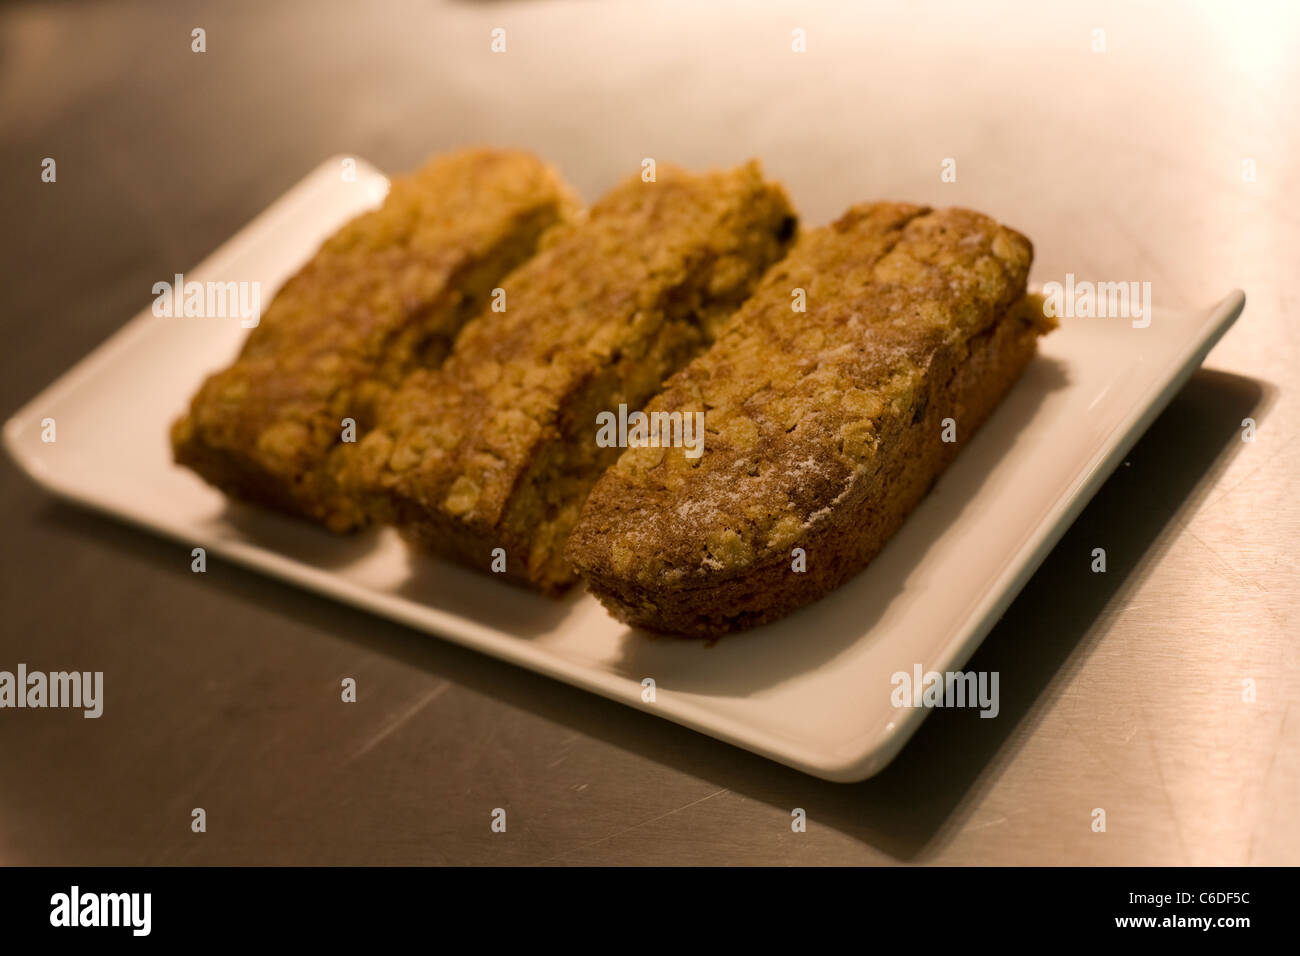 Three pieces of cake arranged on a white rectangular plate - Stock Image